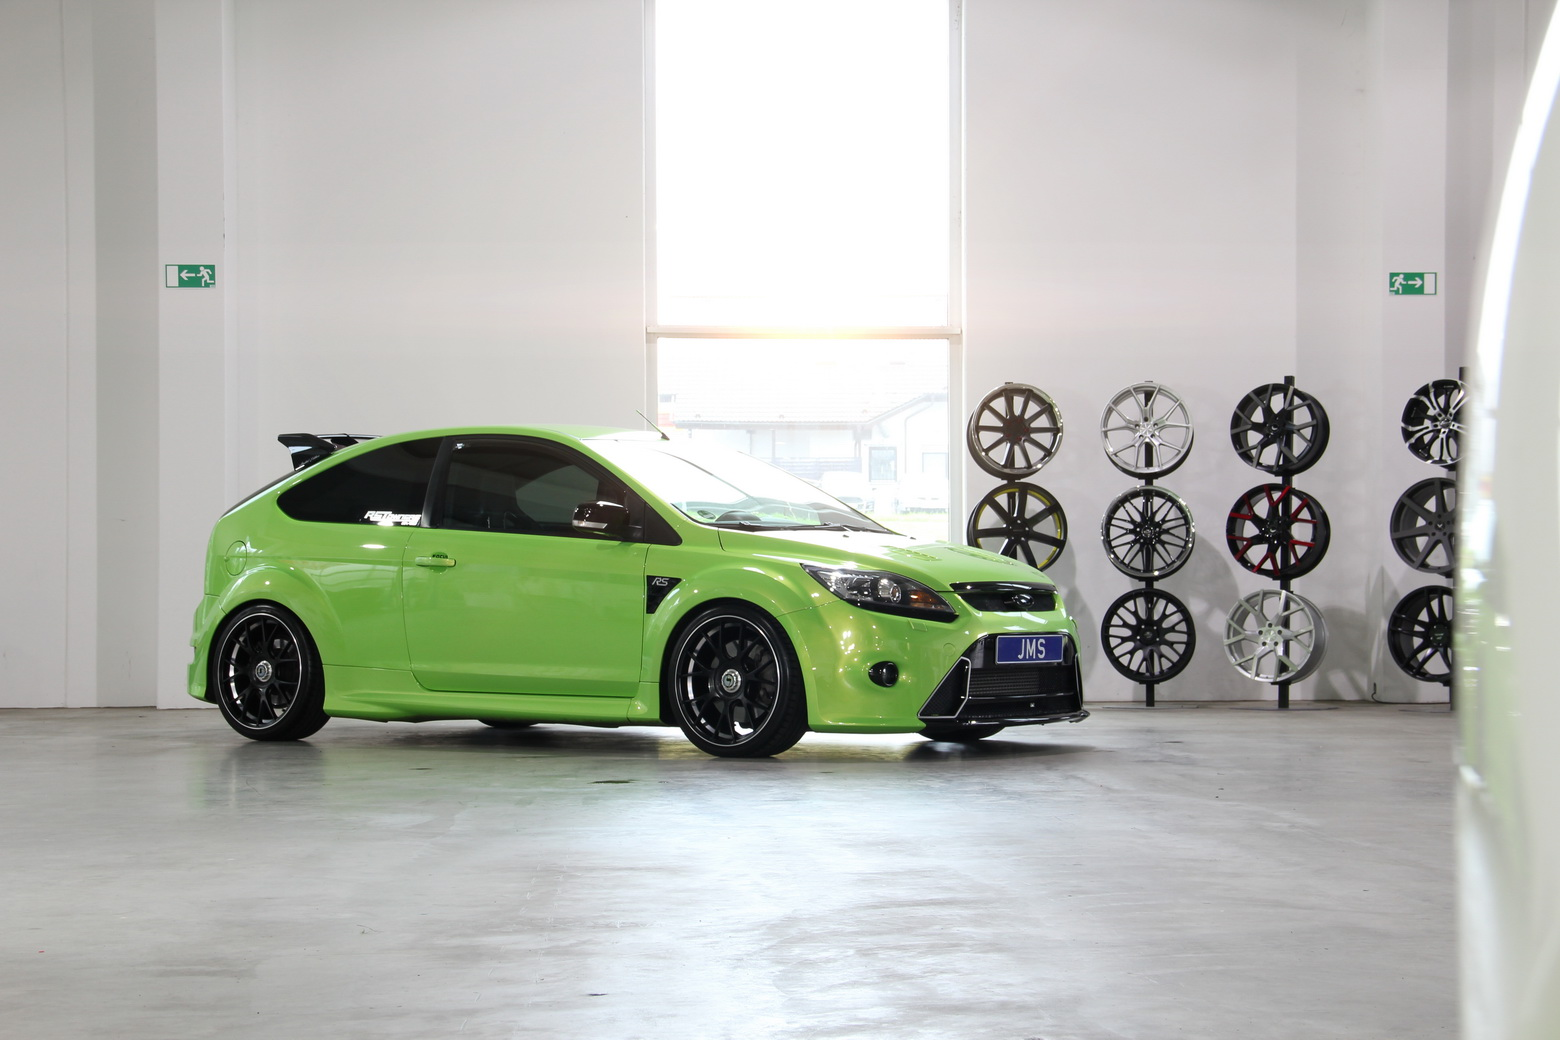 Ford_Focus_RS_JMS_0000